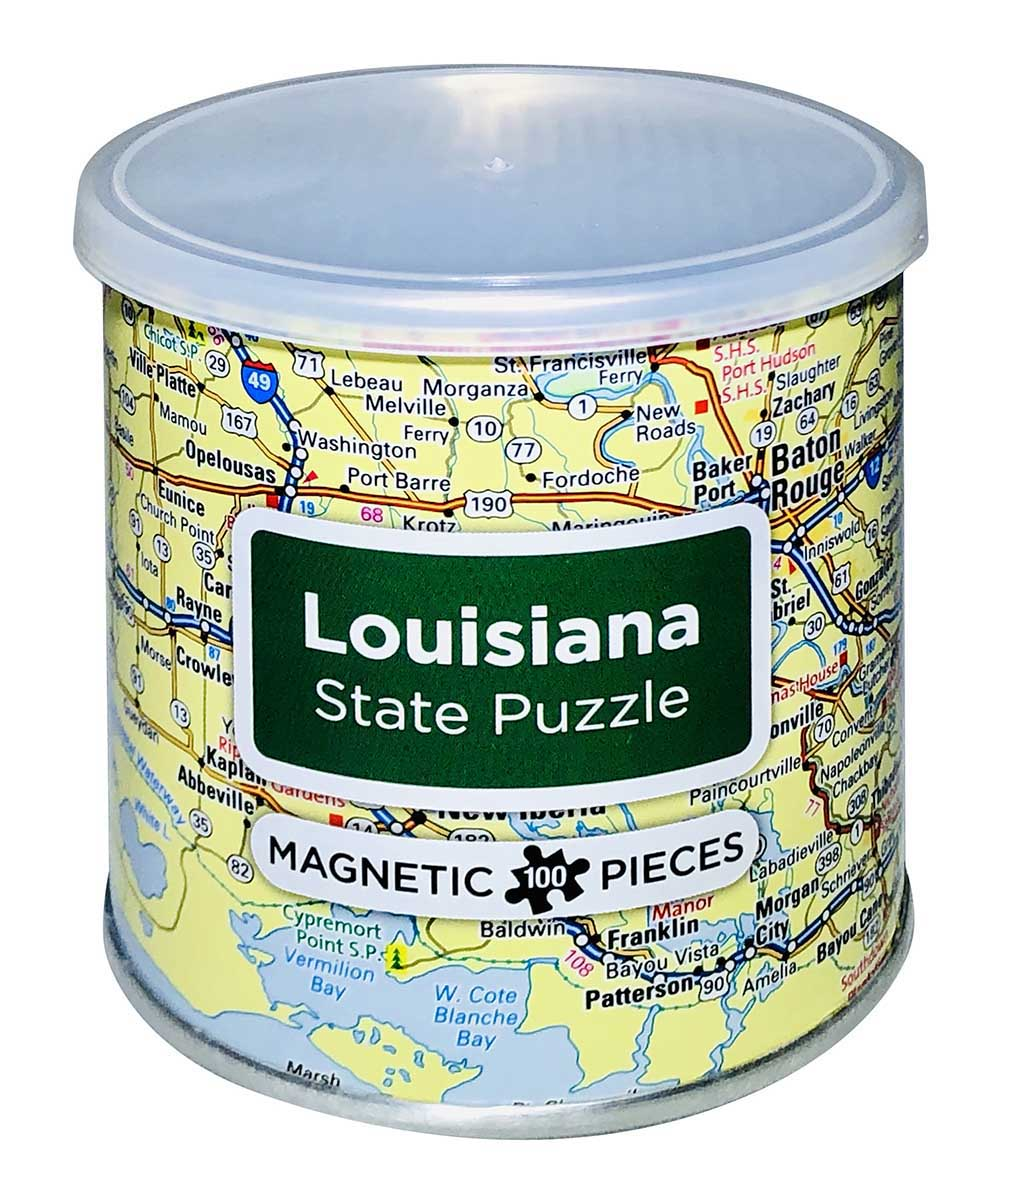 City Magnetic Puzzle Louisiana - Scratch and Dent Cities Jigsaw Puzzle